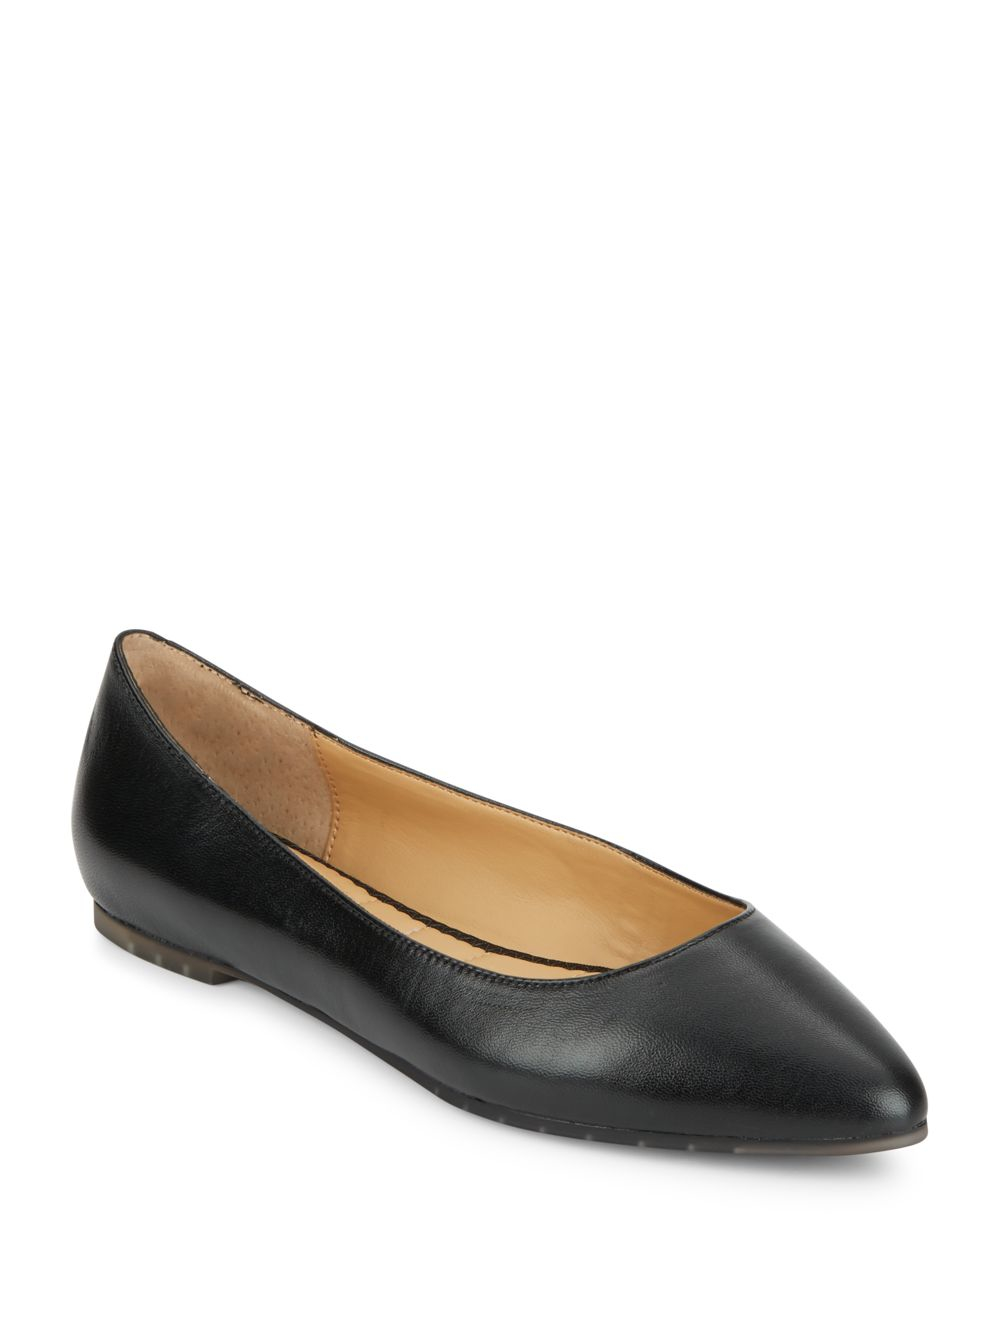 Me too Pointy Toe Leather Flats in Black | Lyst